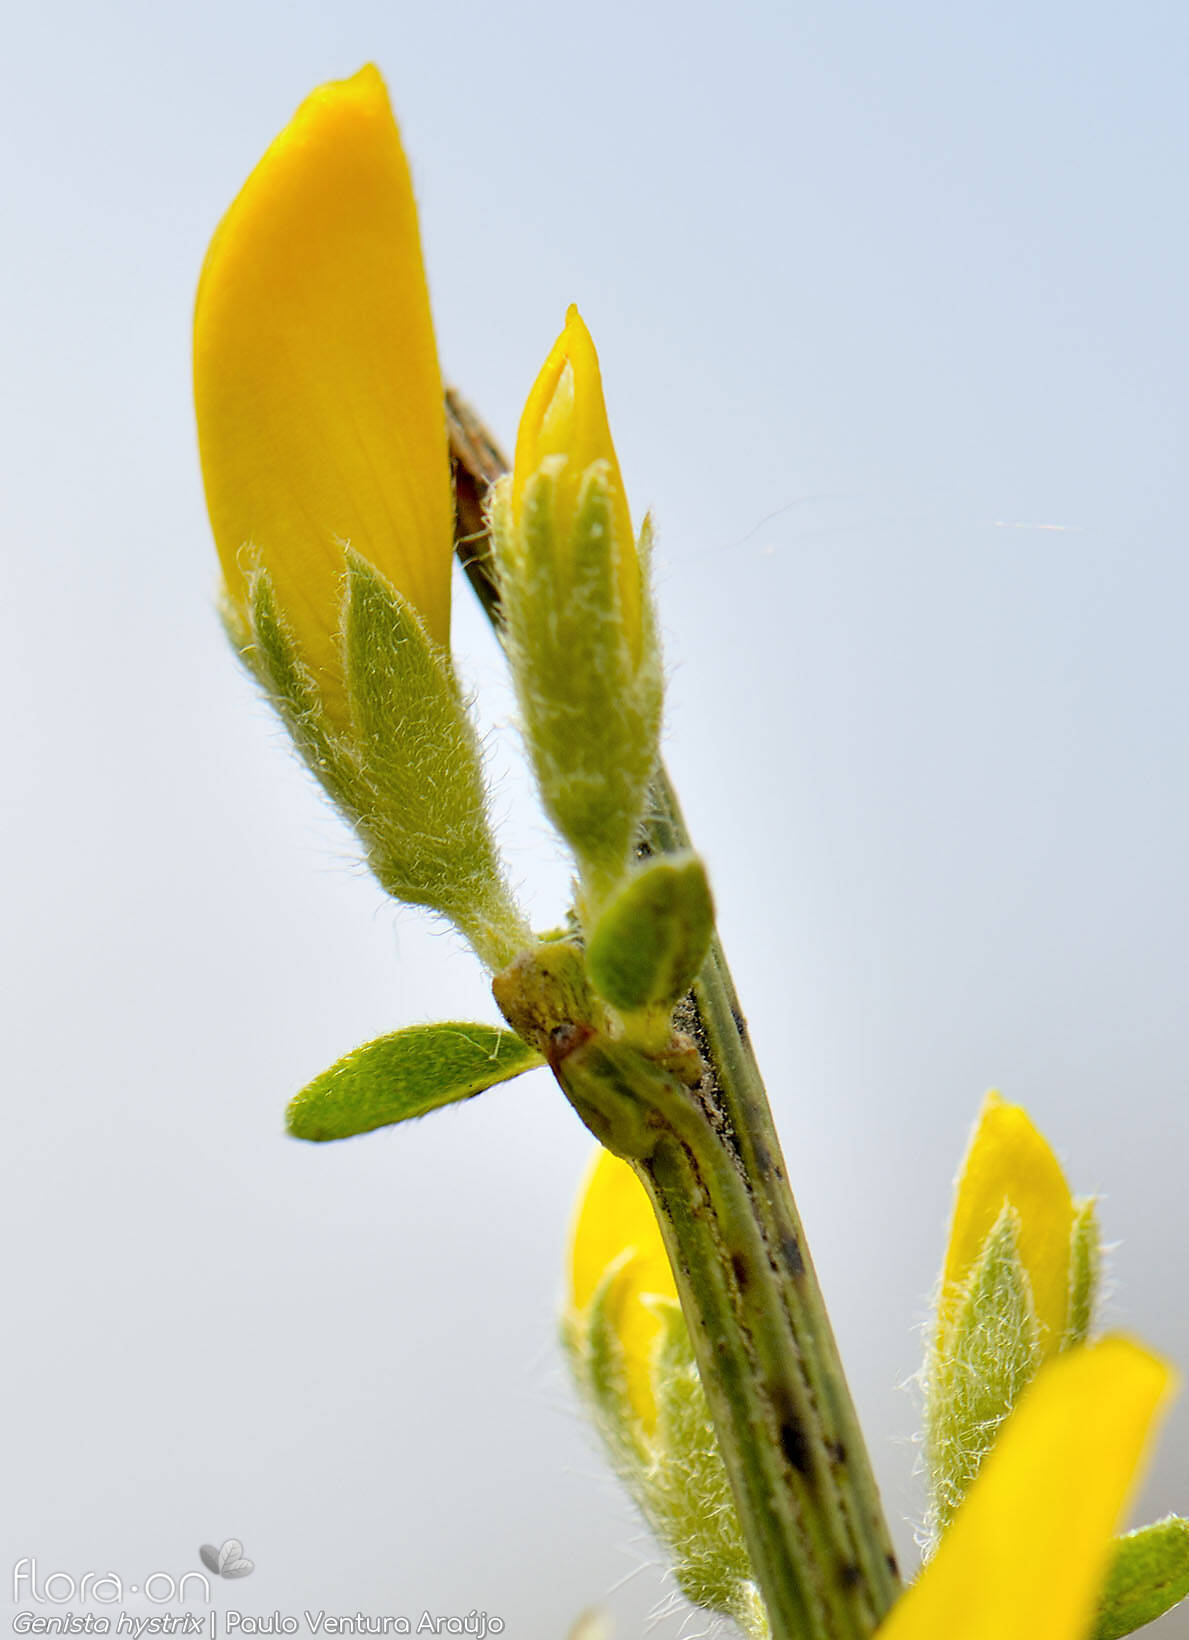 Genista hystrix - Flor (close-up) | Paulo Ventura Araújo; CC BY-NC 4.0